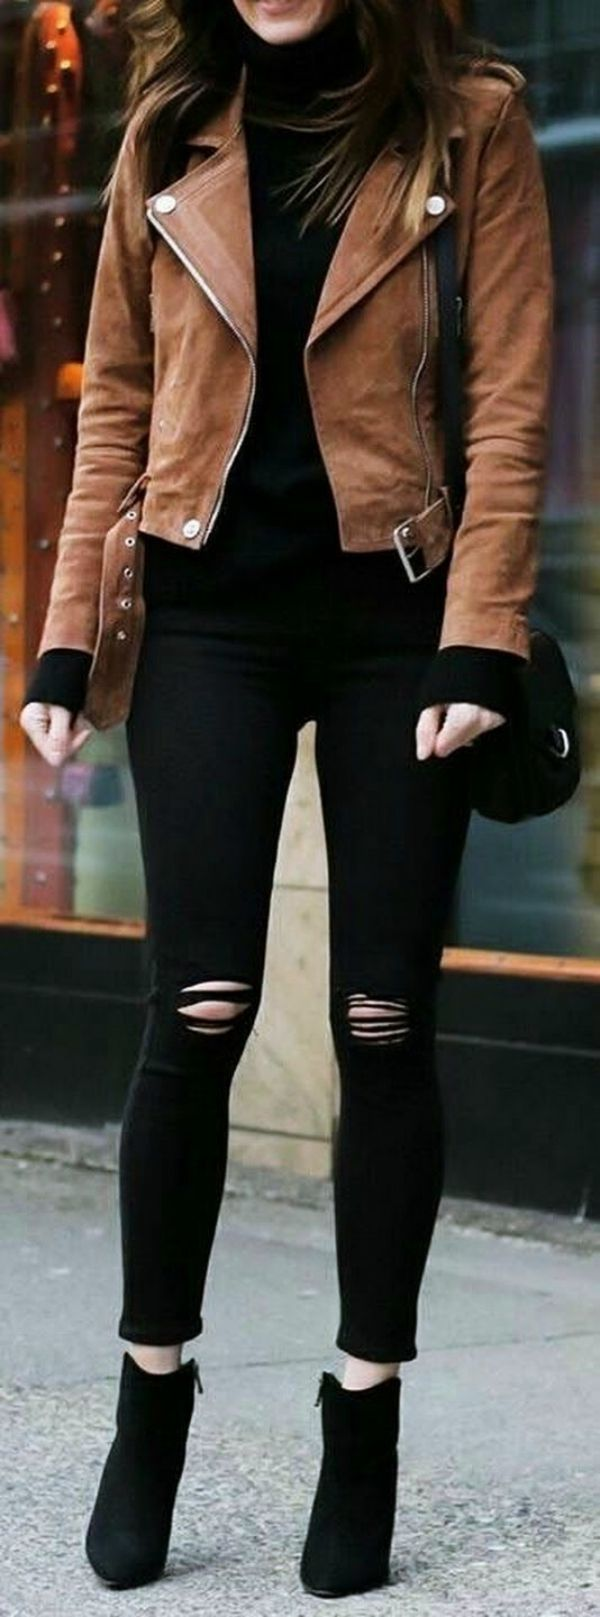 12+ Cute Ways To Wear Ripped Jeans